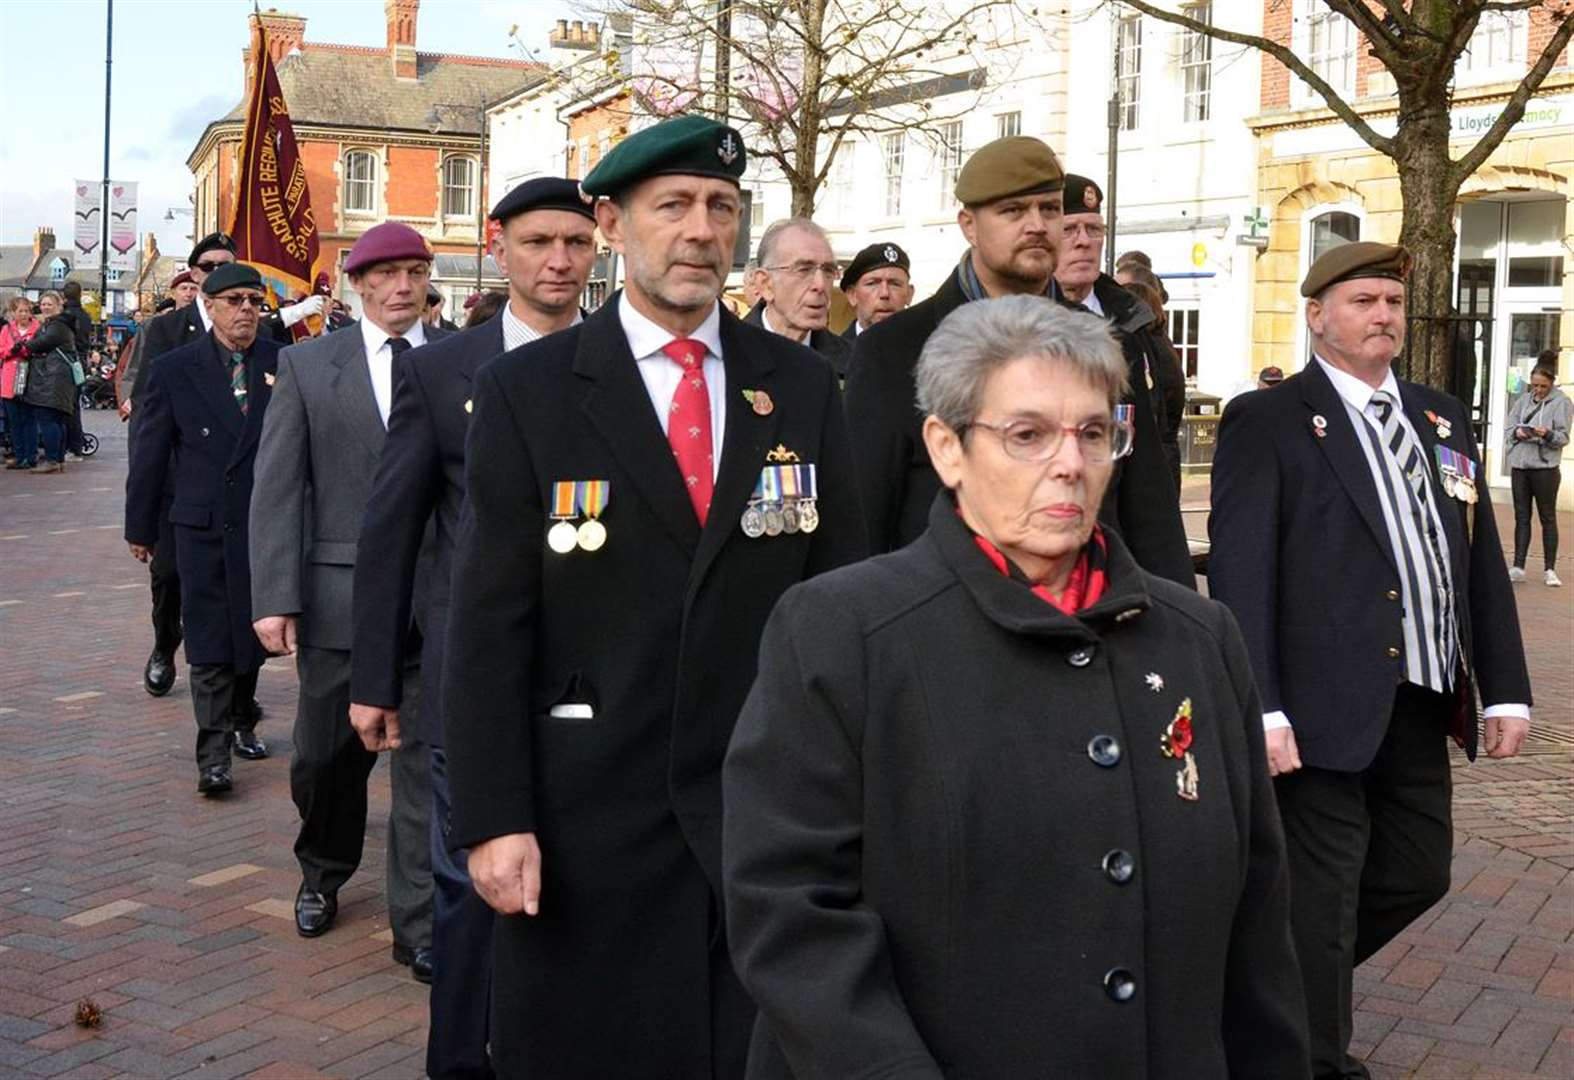 SPALDING TOWN FORUM: Helping hand for Remembrance and military parades in towns